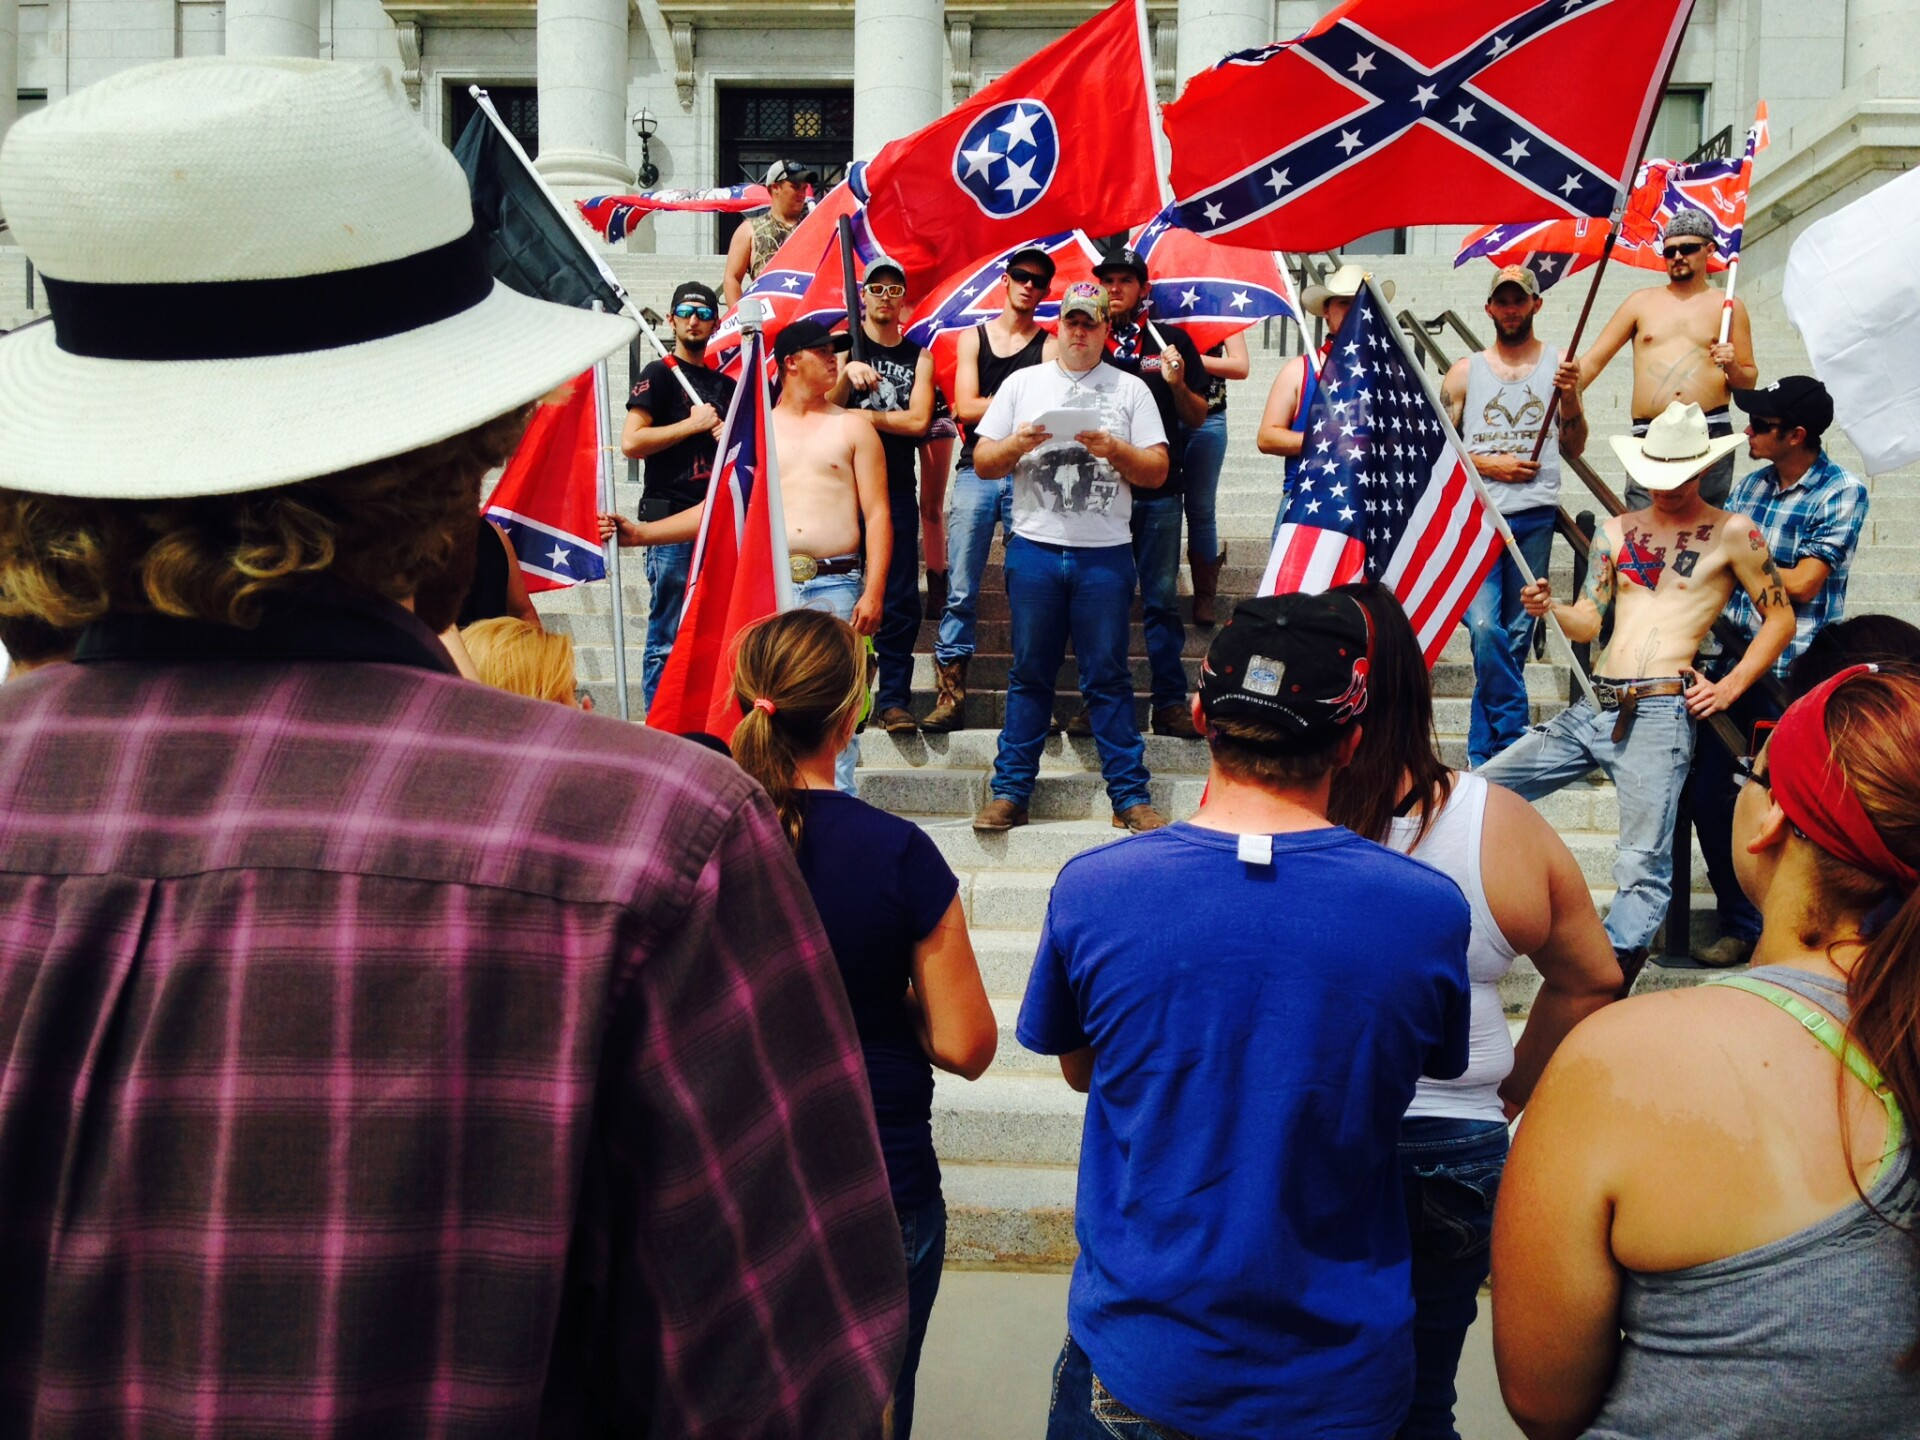 Photos: 'Salt Lake Confederates' cruise to State Capitol to show support of flag